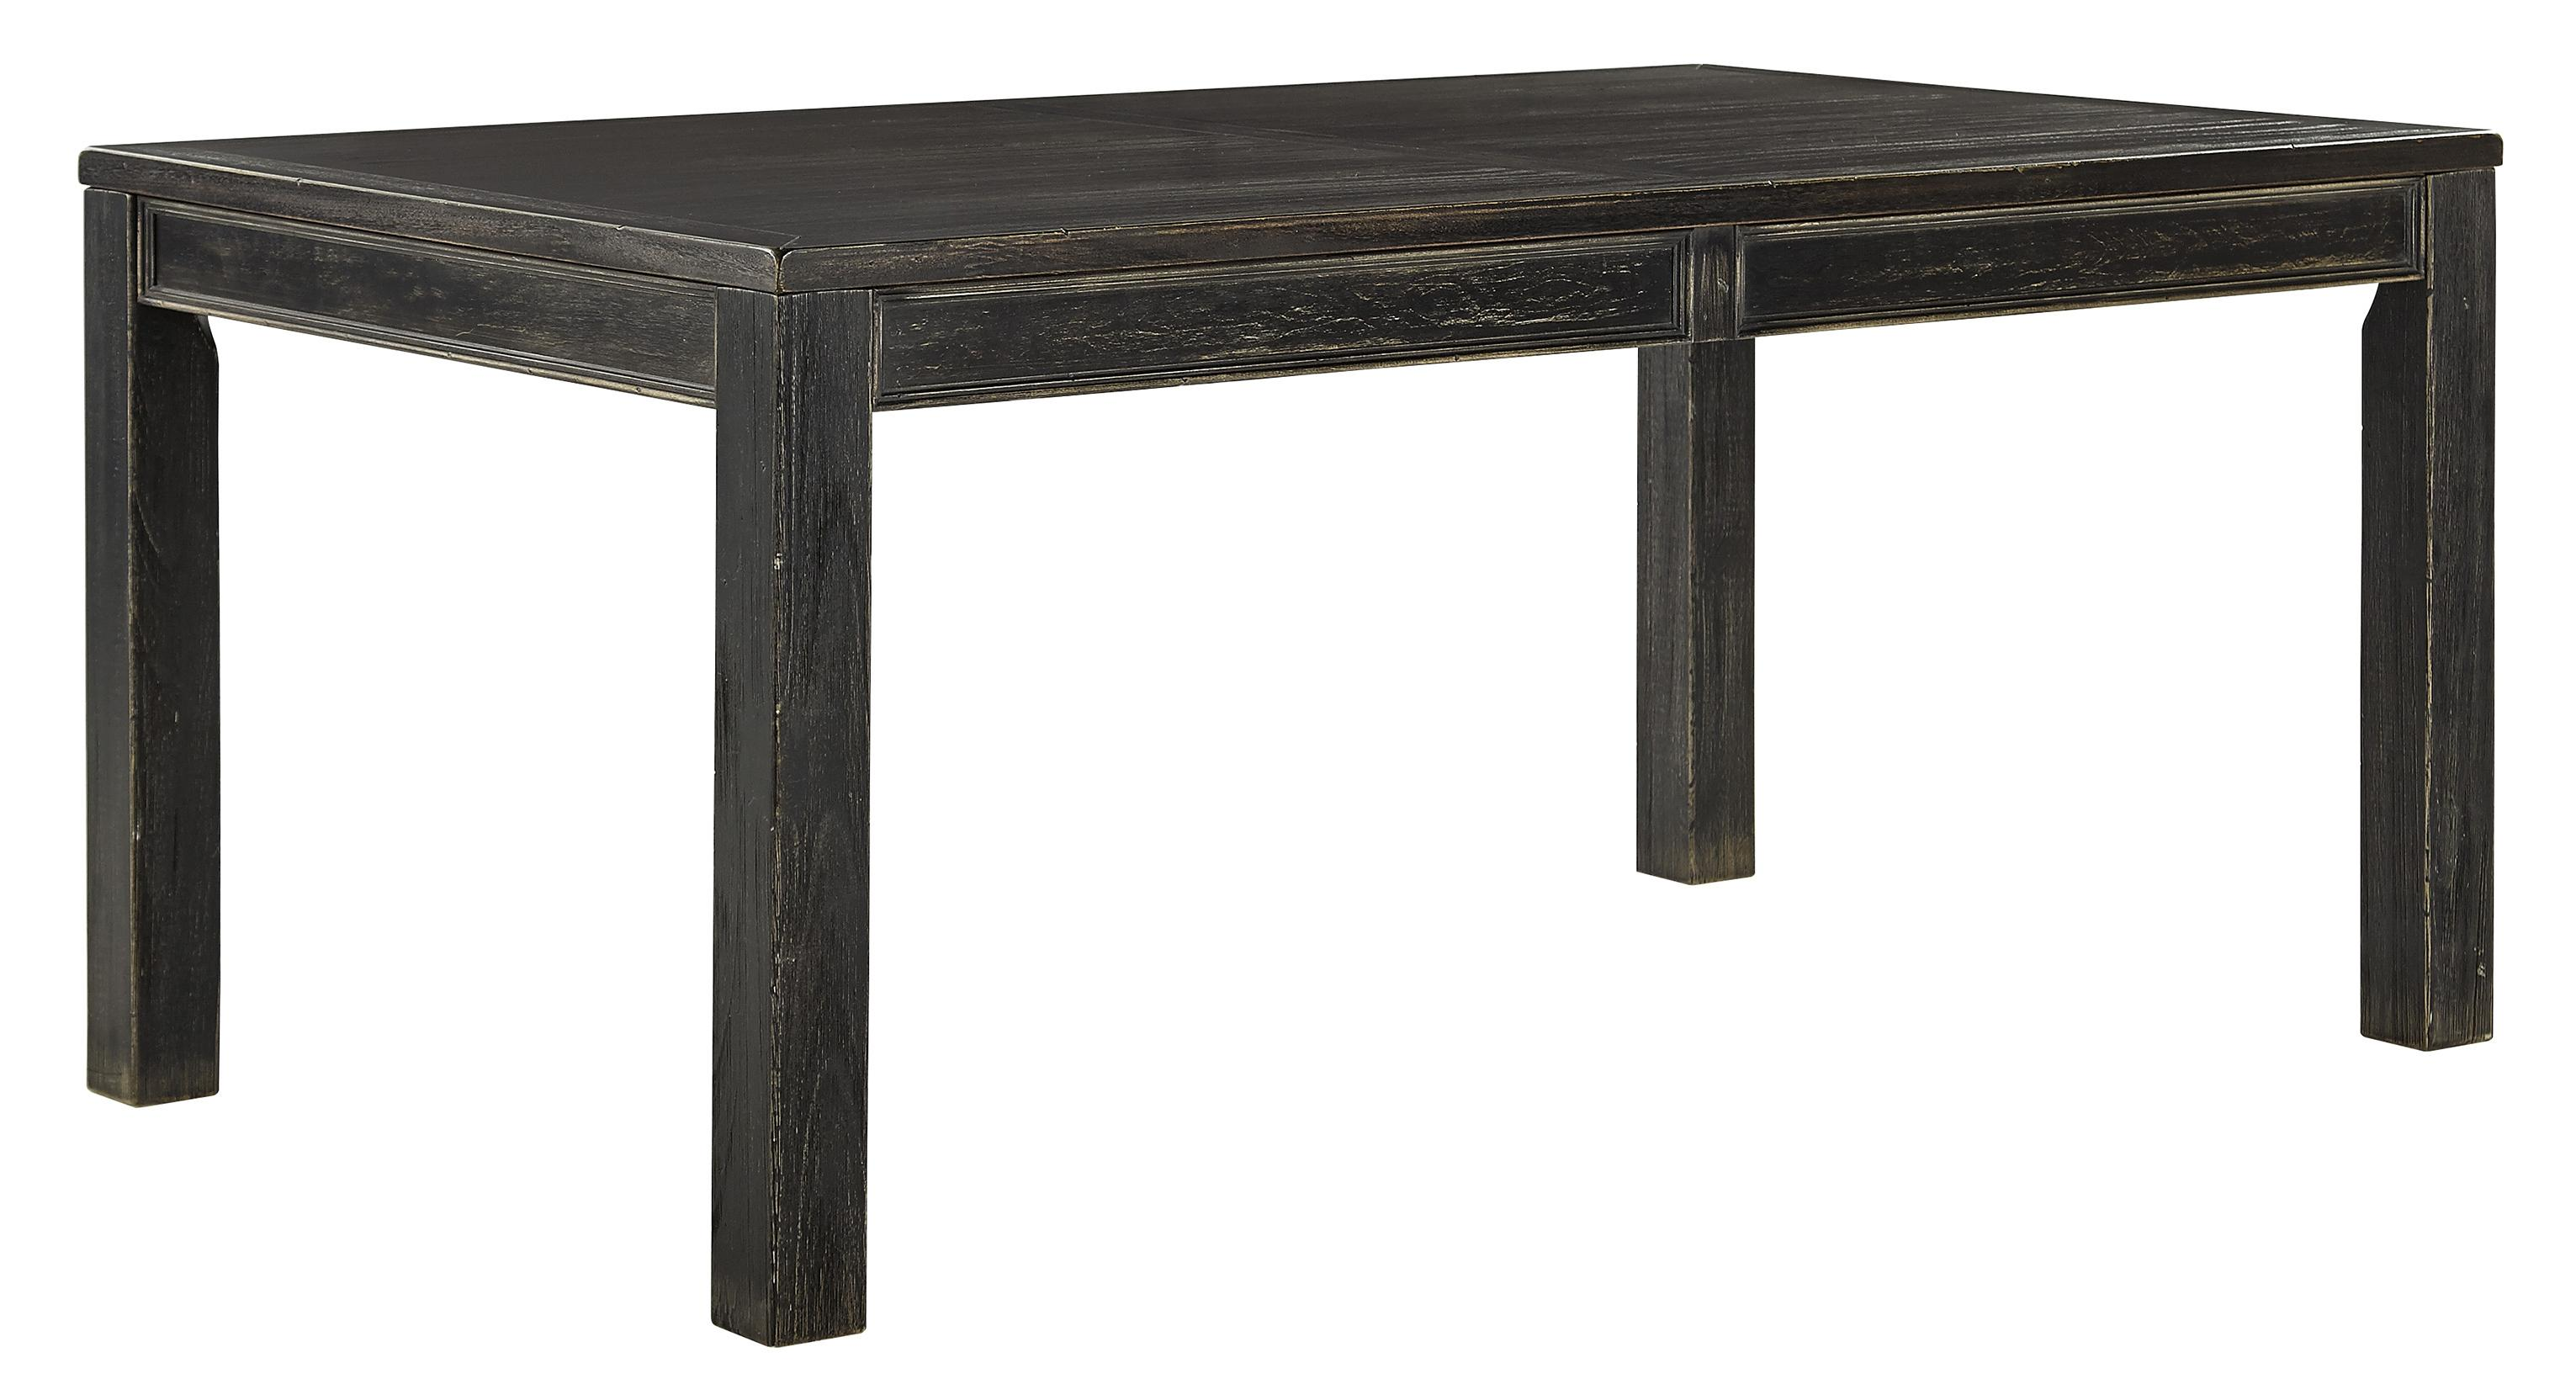 Signature Design by Ashley Gavelston Rectangular Dining Room Table - Item Number: D532-25